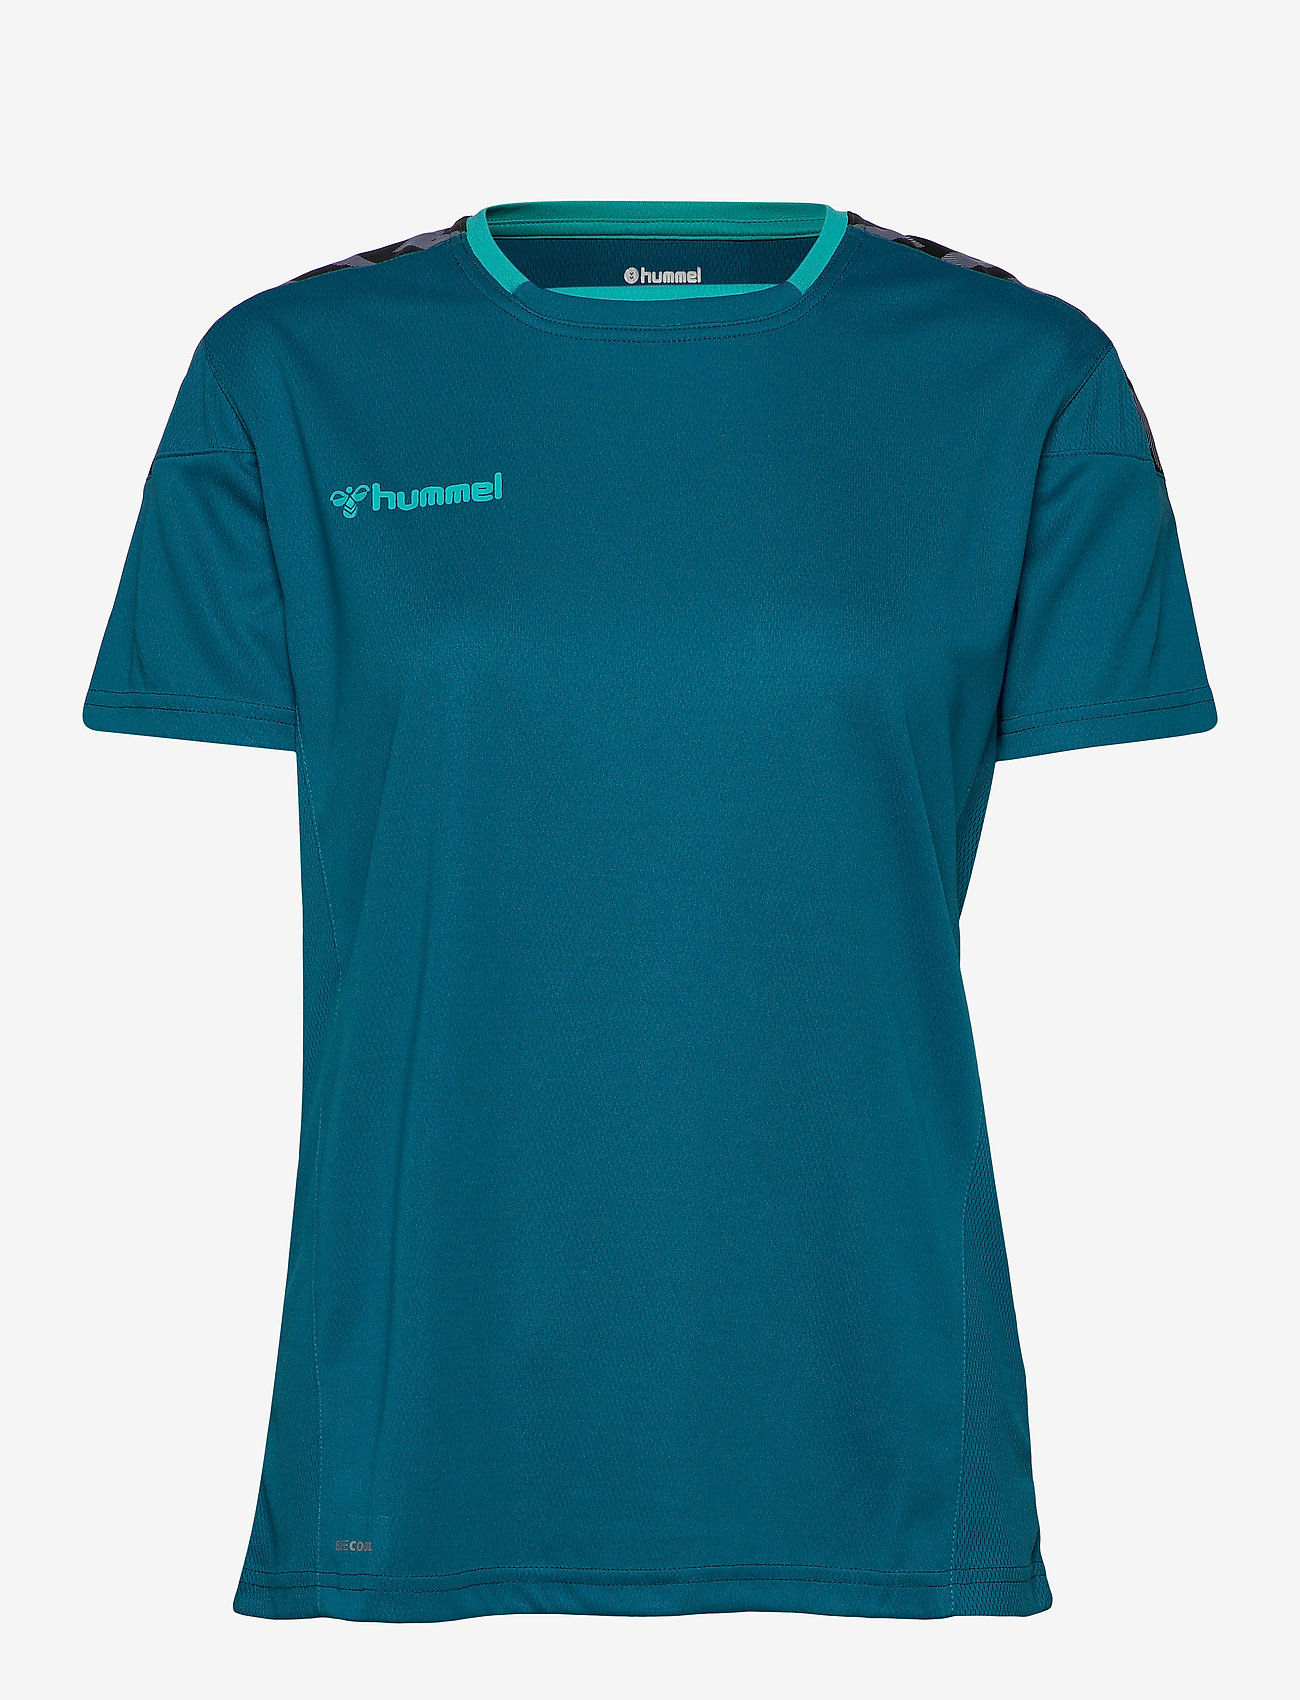 Hummel - hmlAUTHENTIC POLY JERSEY WOMAN S/S - t-shirts - celestial - 0